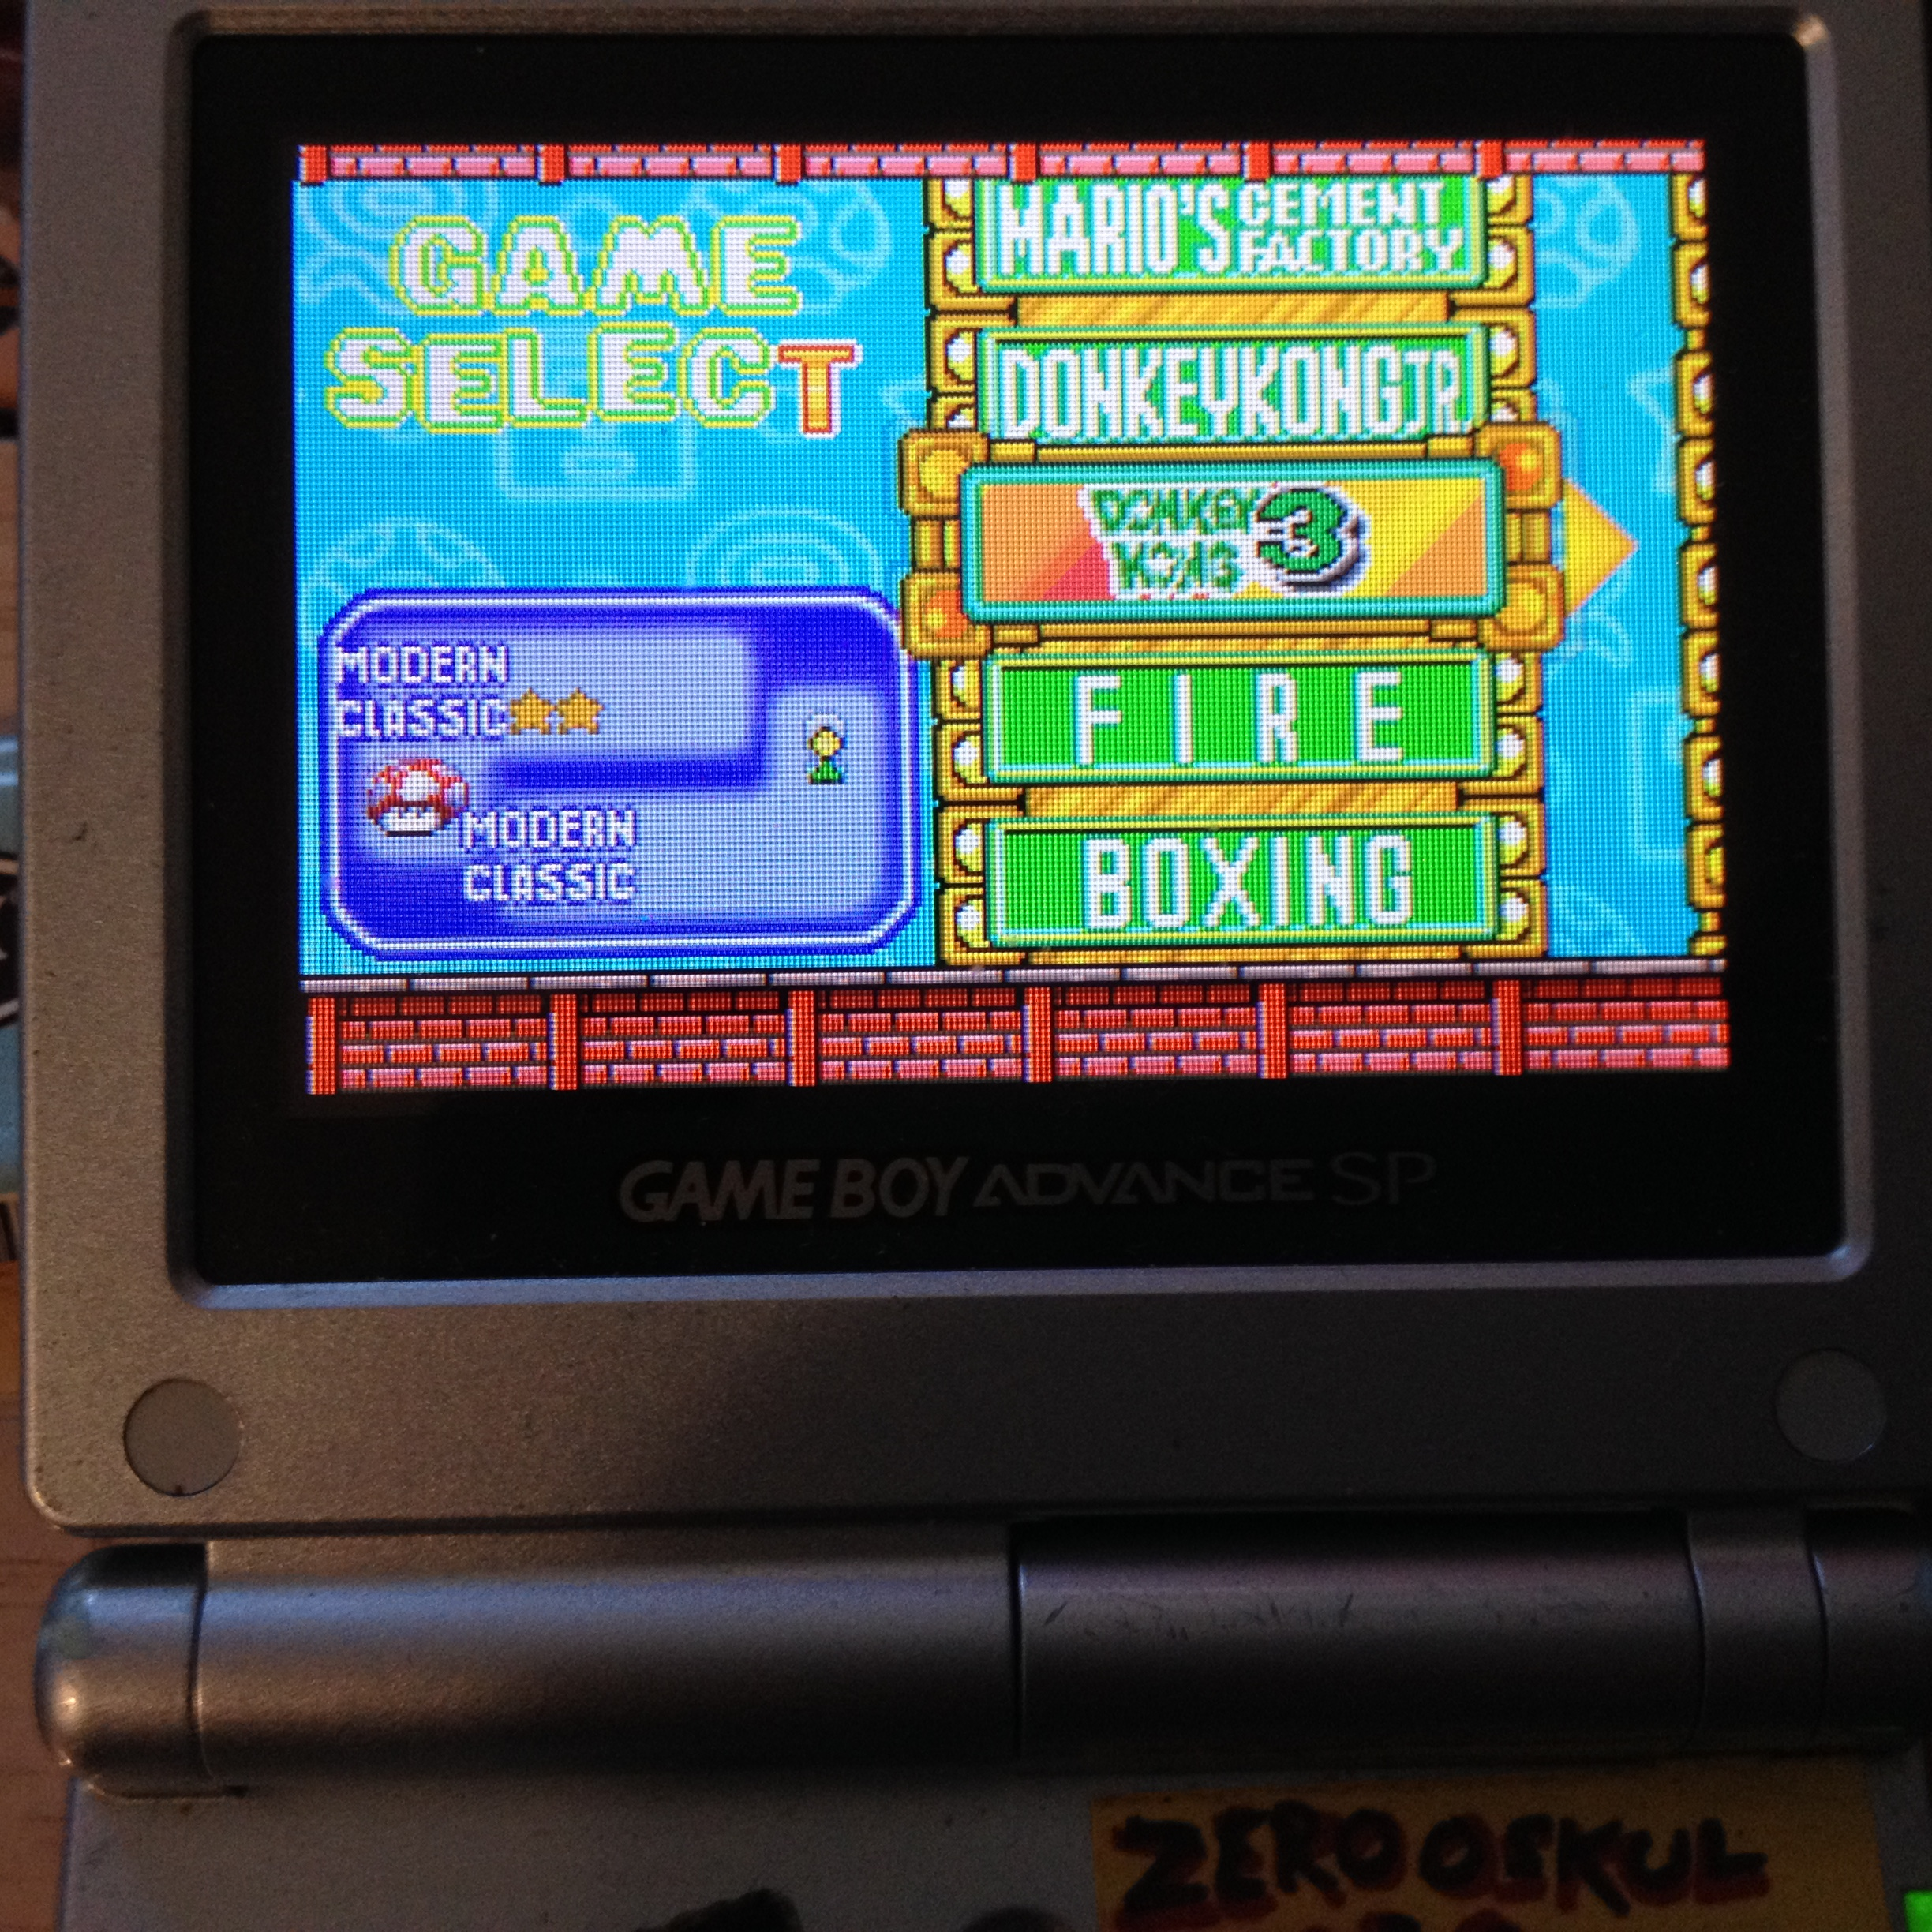 zerooskul: Game & Watch Gallery 4: Donkey Kong 3 [Classic: Game A] (GBA) 513 points on 2019-08-09 18:13:30